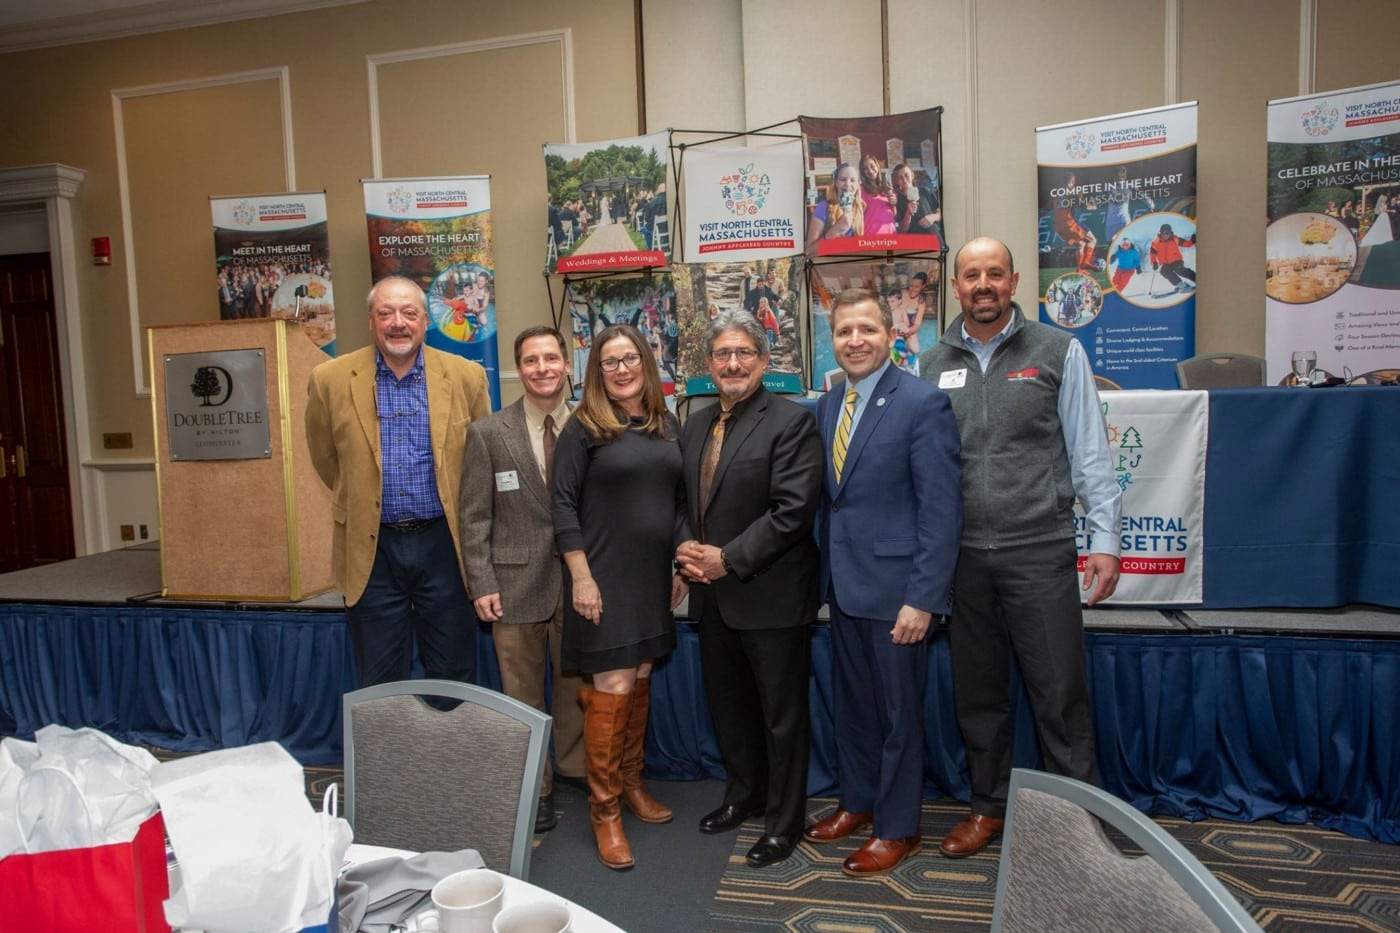 Left to right: Tony D'Agostino, Research Director for the Commonwealth of MA, Charlie Stephanini, Principal at Charles Stephanini Consulting, Lysa Miller, Partner at 3 Media Web, Fitchburg Mayor Stephen DiNatale, Roy Nascimento, President of the North Central MA Chamber of Commerce and Al Rose, owner Red Apple Farm.